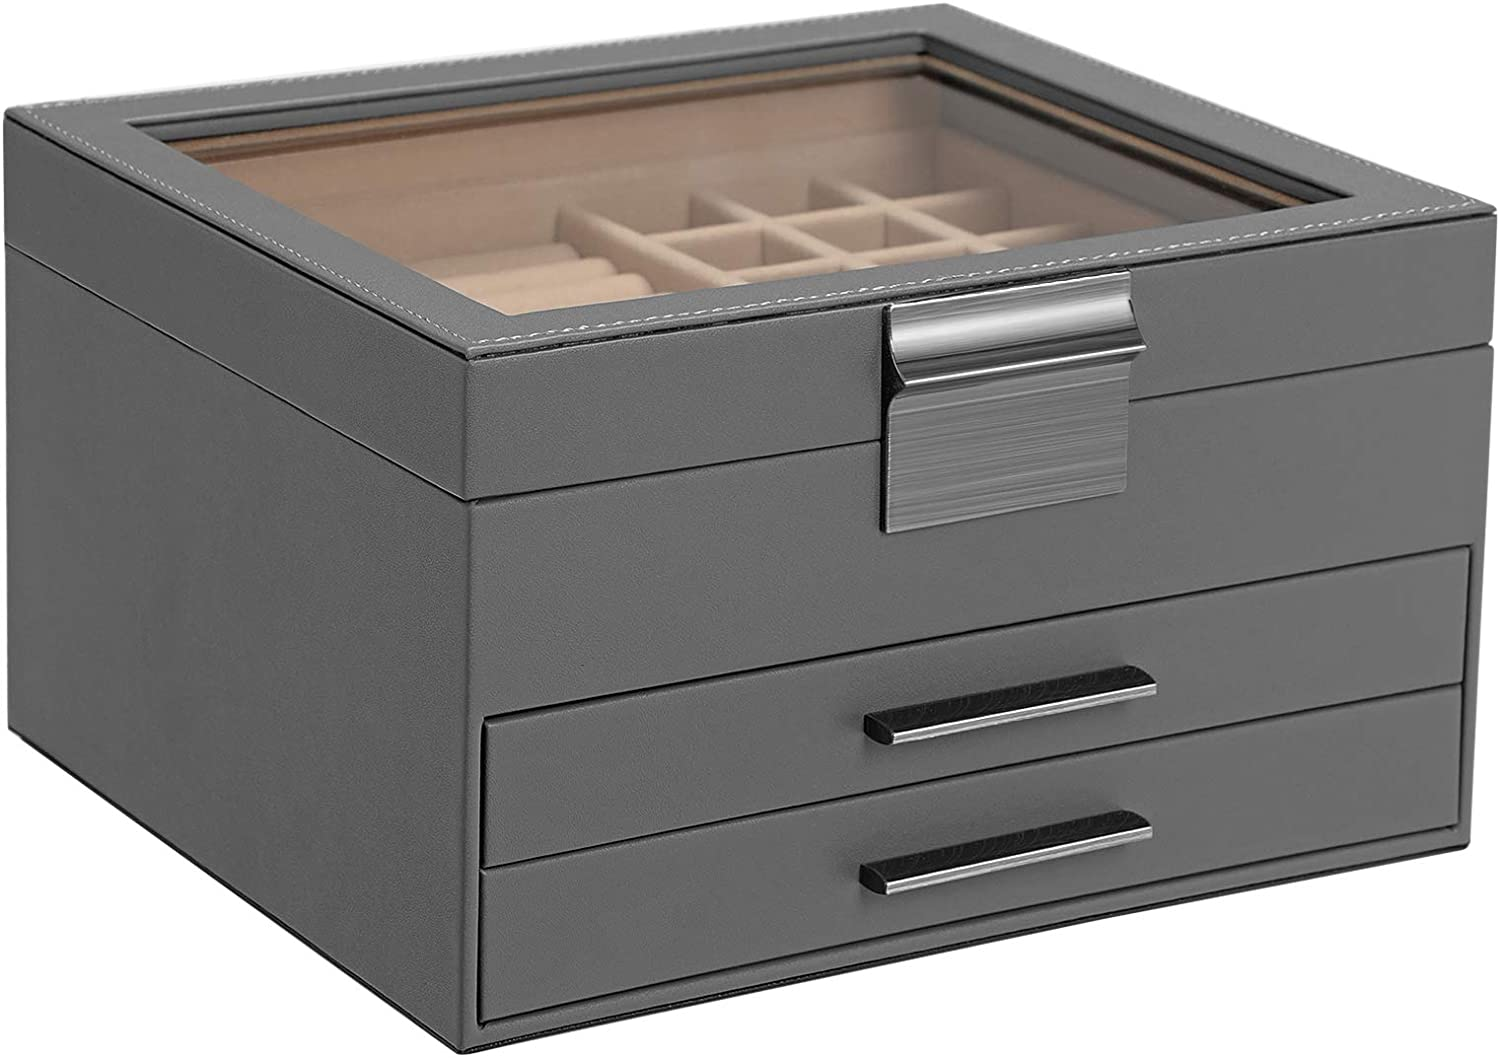 SONGMICS Jewelry Box with Glass Lid, 3-Layer Jewelry Organizer with 2 Drawers, Gift for Loved Ones, Gray UJBC239GY